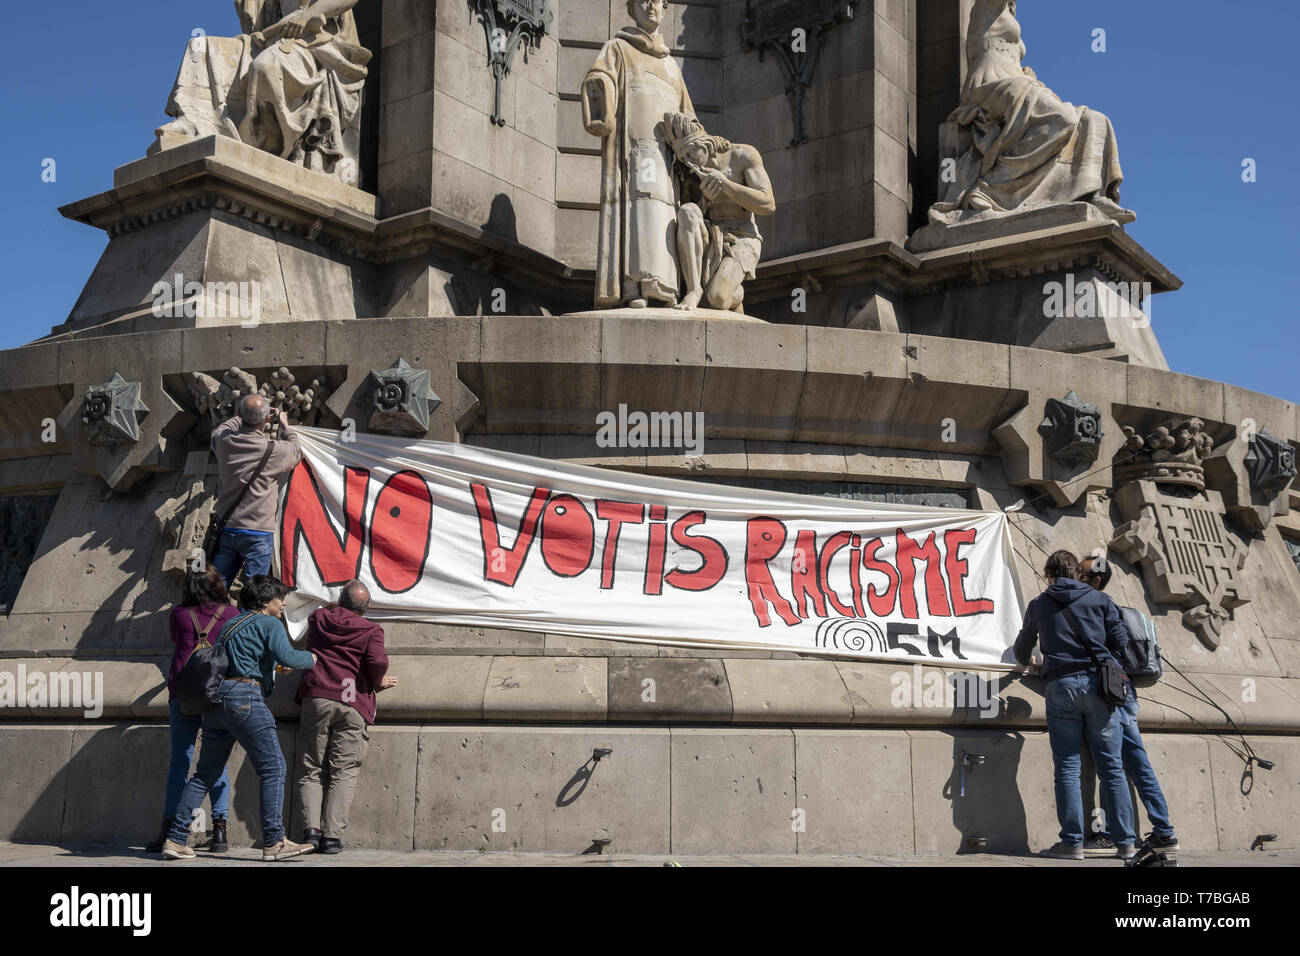 Barcelona Catalonia Spain 5th May 2019 Protesters Are Seen Hanging A Big Banner At The Columbus